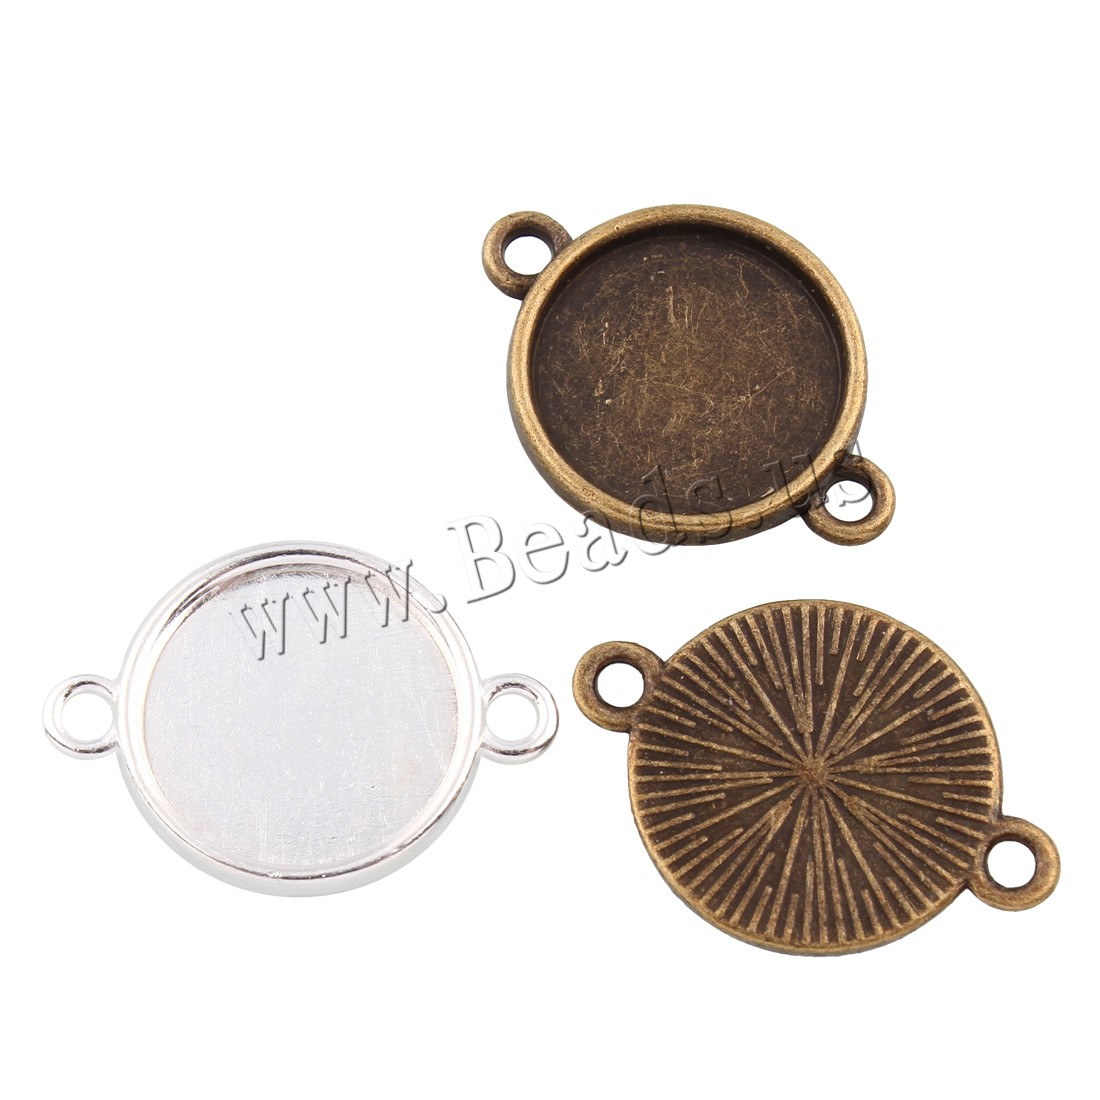 Buy Zinc Alloy Connector Flat Round plated 1/1 loop colors choice lead & cadmium free 23x16x1.50mm Hole:Approx 1.5mm Inner Diameter:Approx 14mm 25PCs/Bag Sold Bag